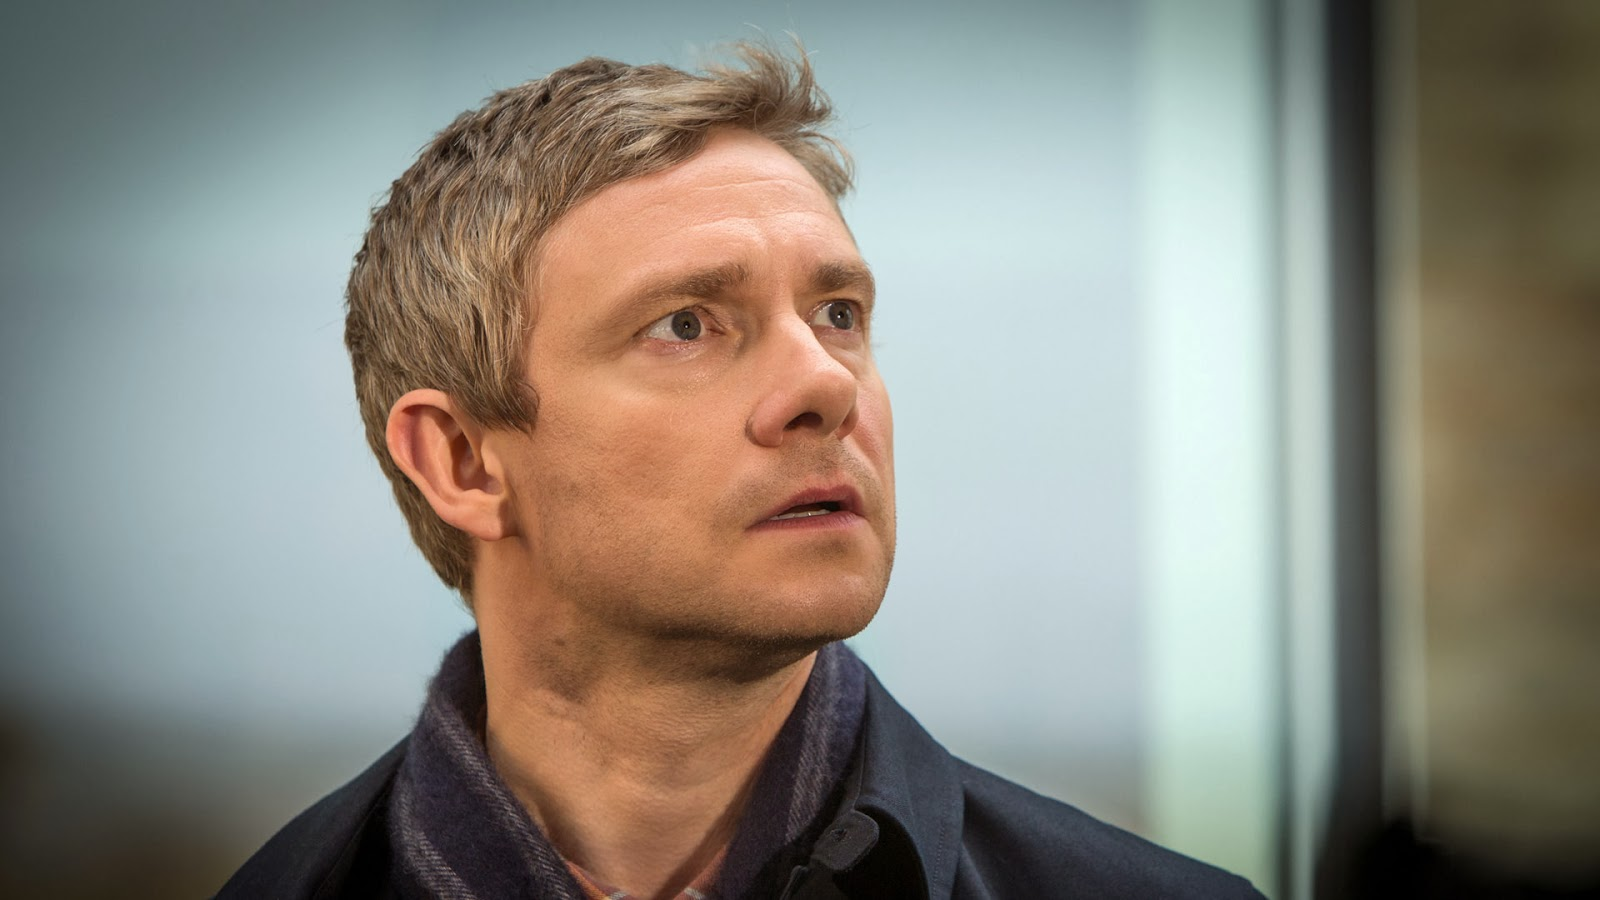 Martin Freeman as John Watson in BBC Sherlock Season 3 Episode 3 His Last Vow